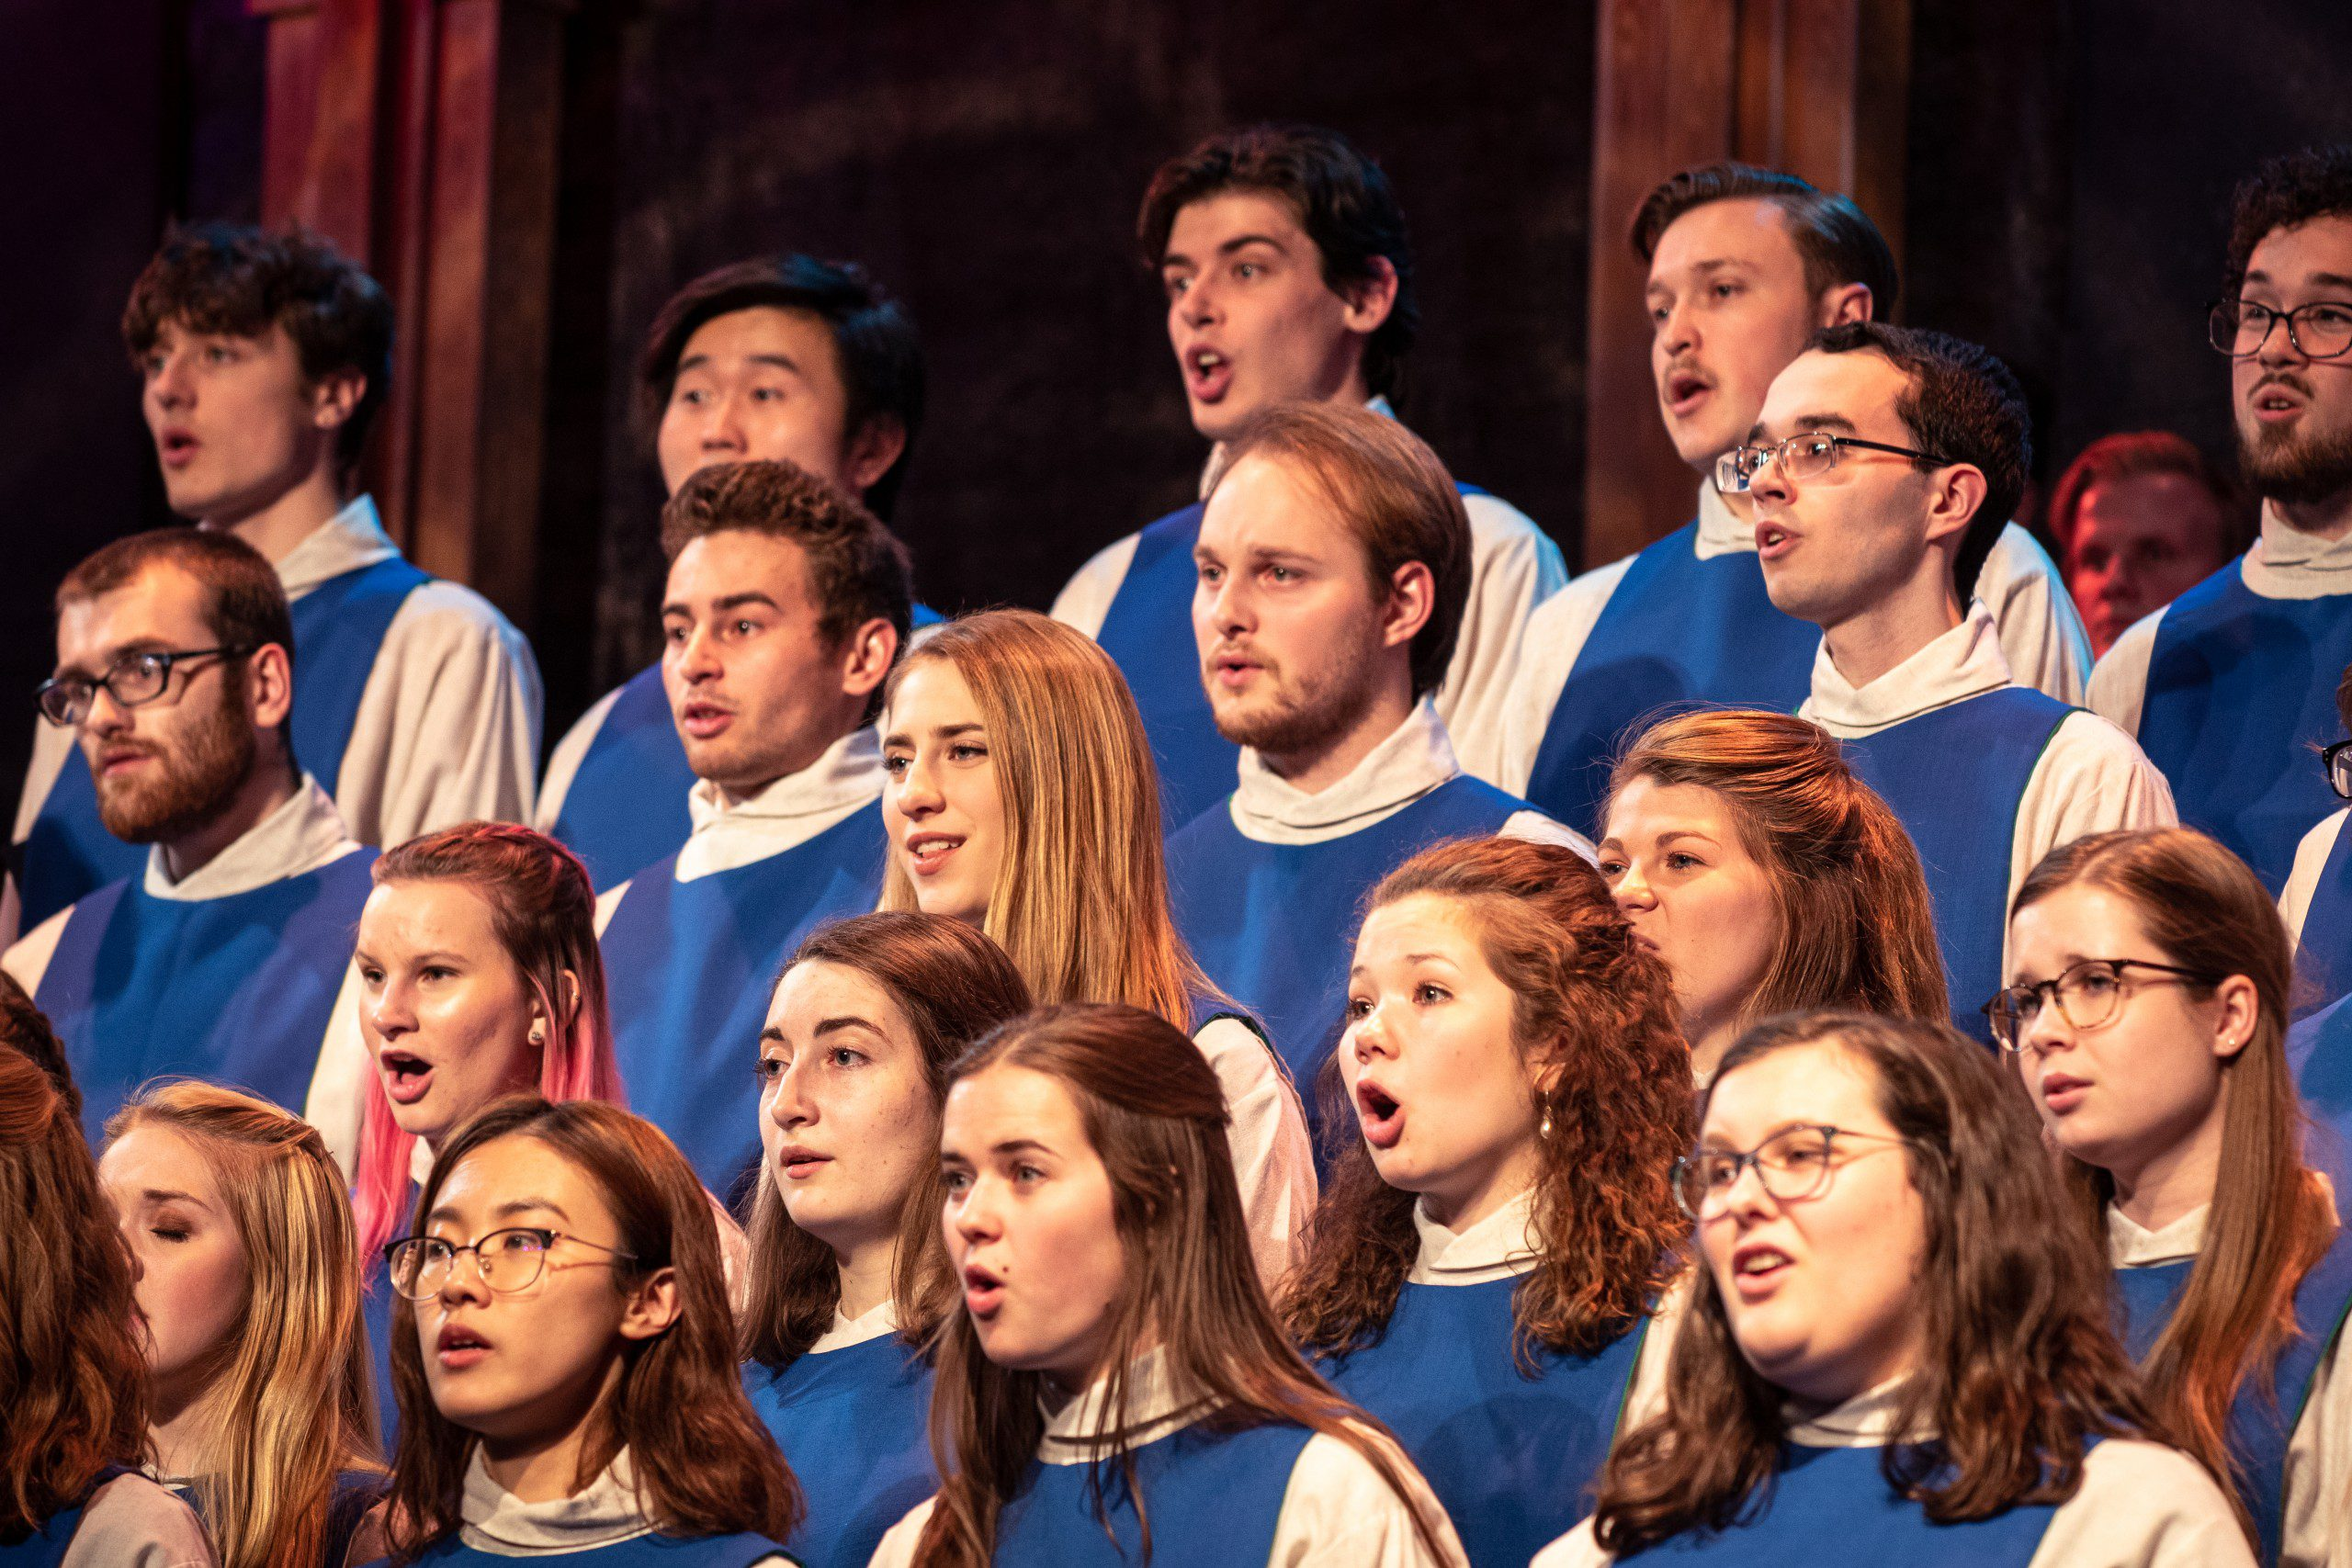 St Olaf Choir Christmas 2020 Senior year in the midst of a pandemic – St. Olaf College